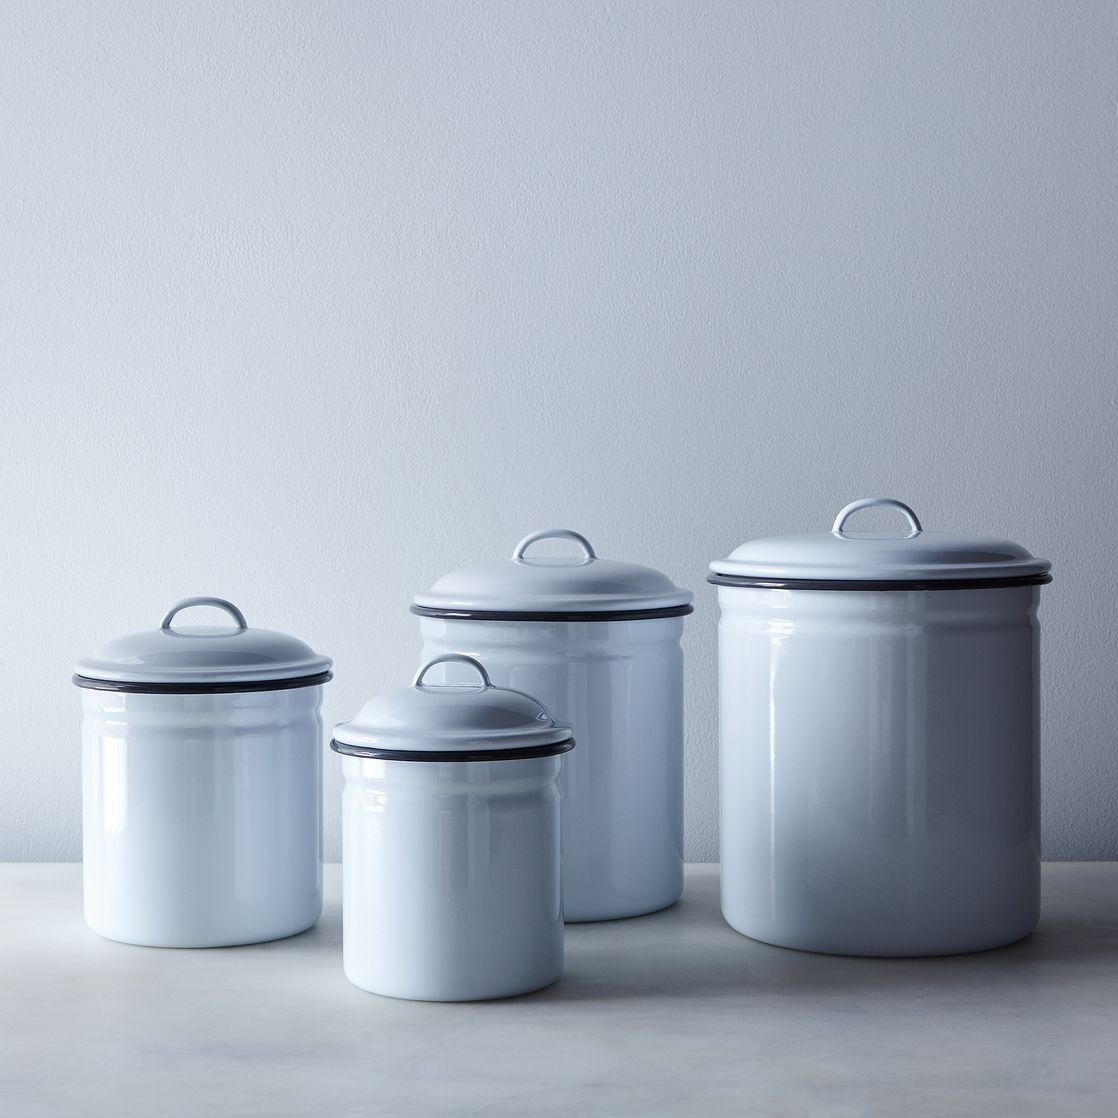 White Grey Enamel Kitchen Canisters Set of 4 on Food52